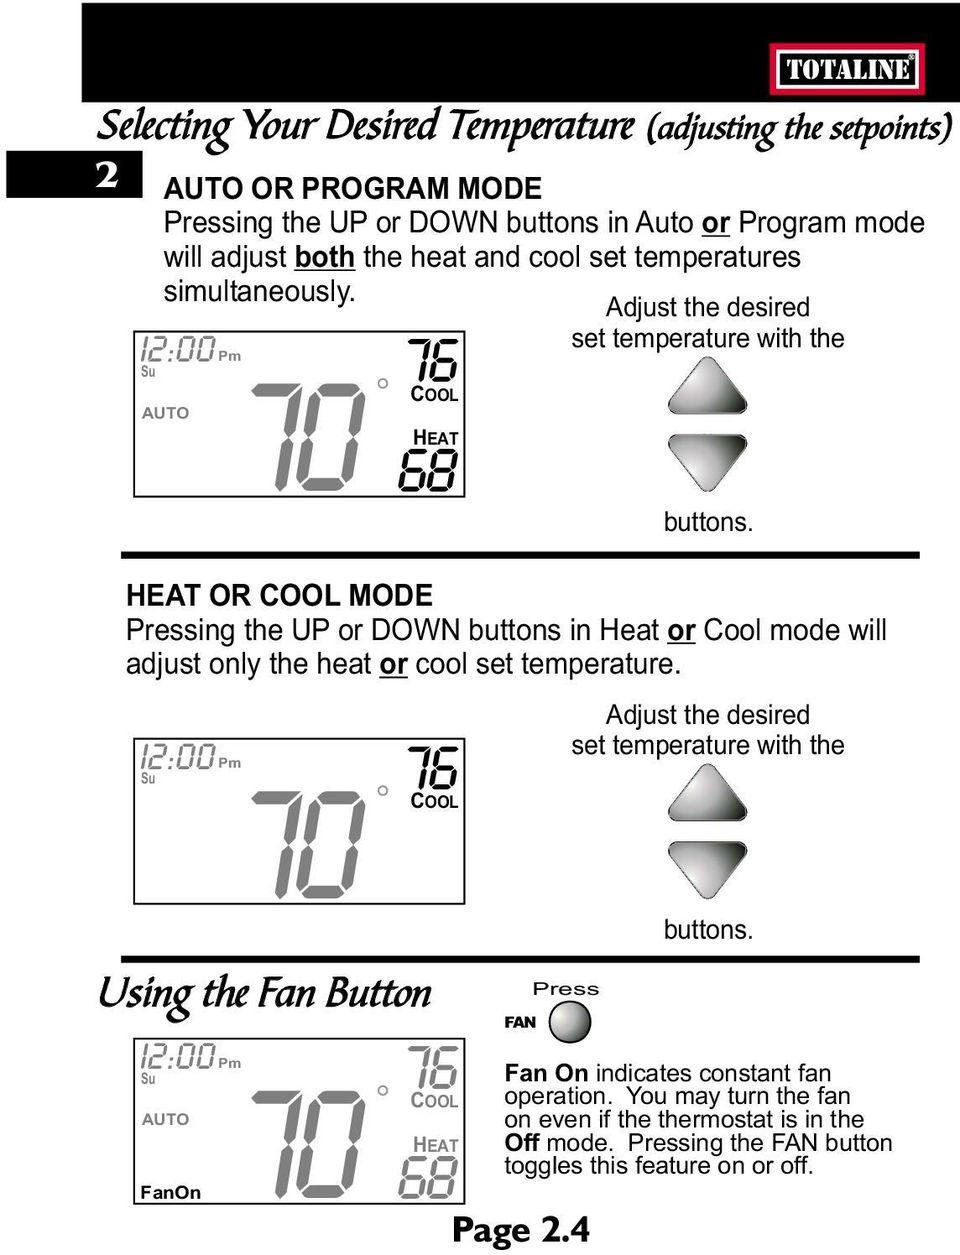 HEAT OR COOL ing the UP or DOWN buttons in Heat or Cool mode will adjust only the heat or cool set temperature.